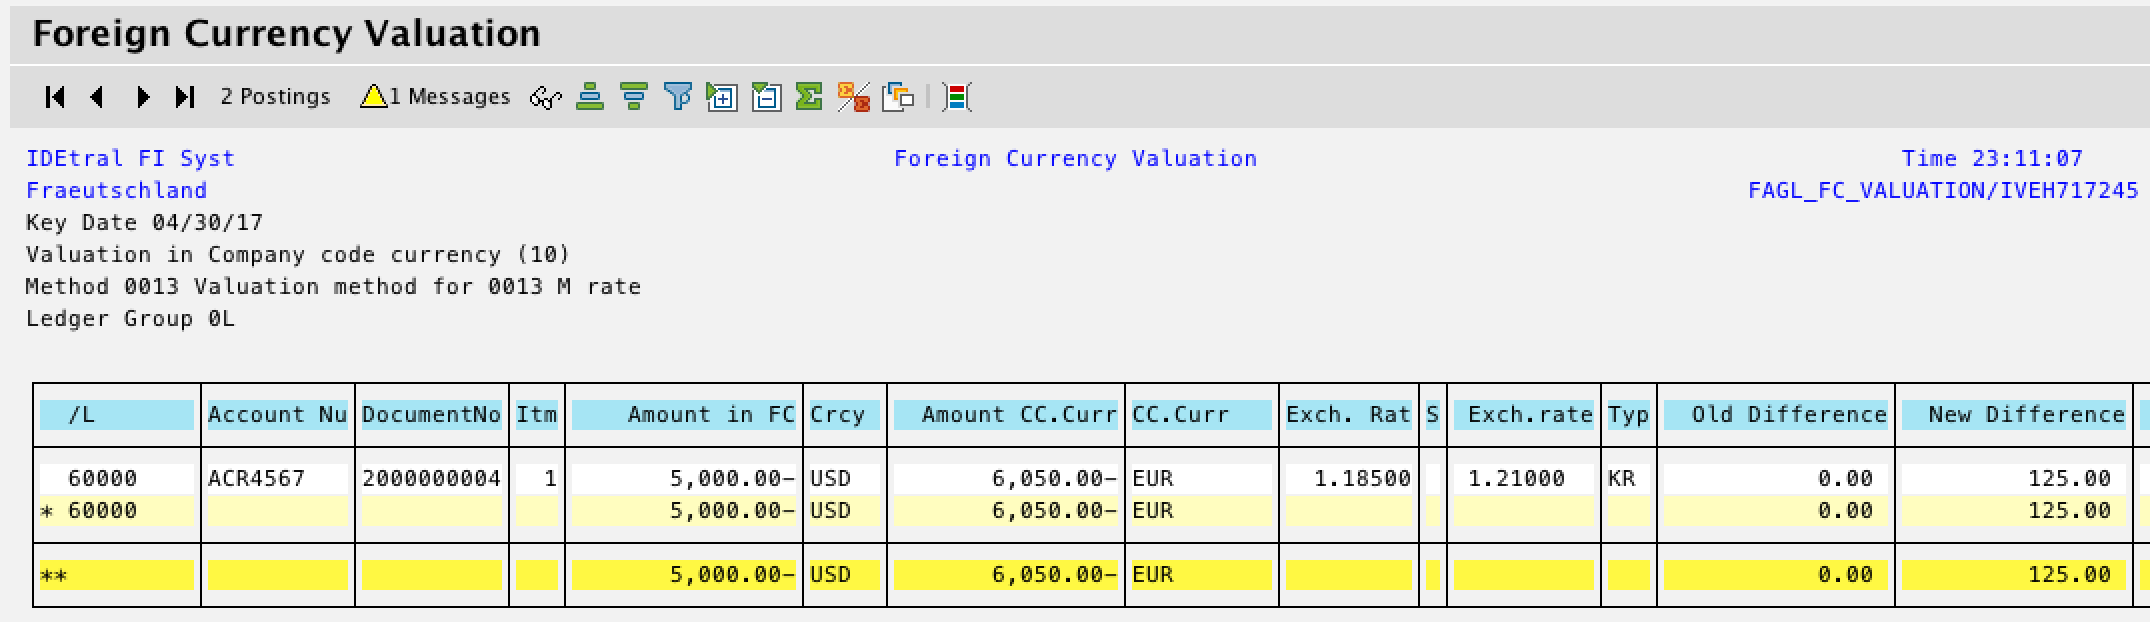 Foreign Currency Valuation Results